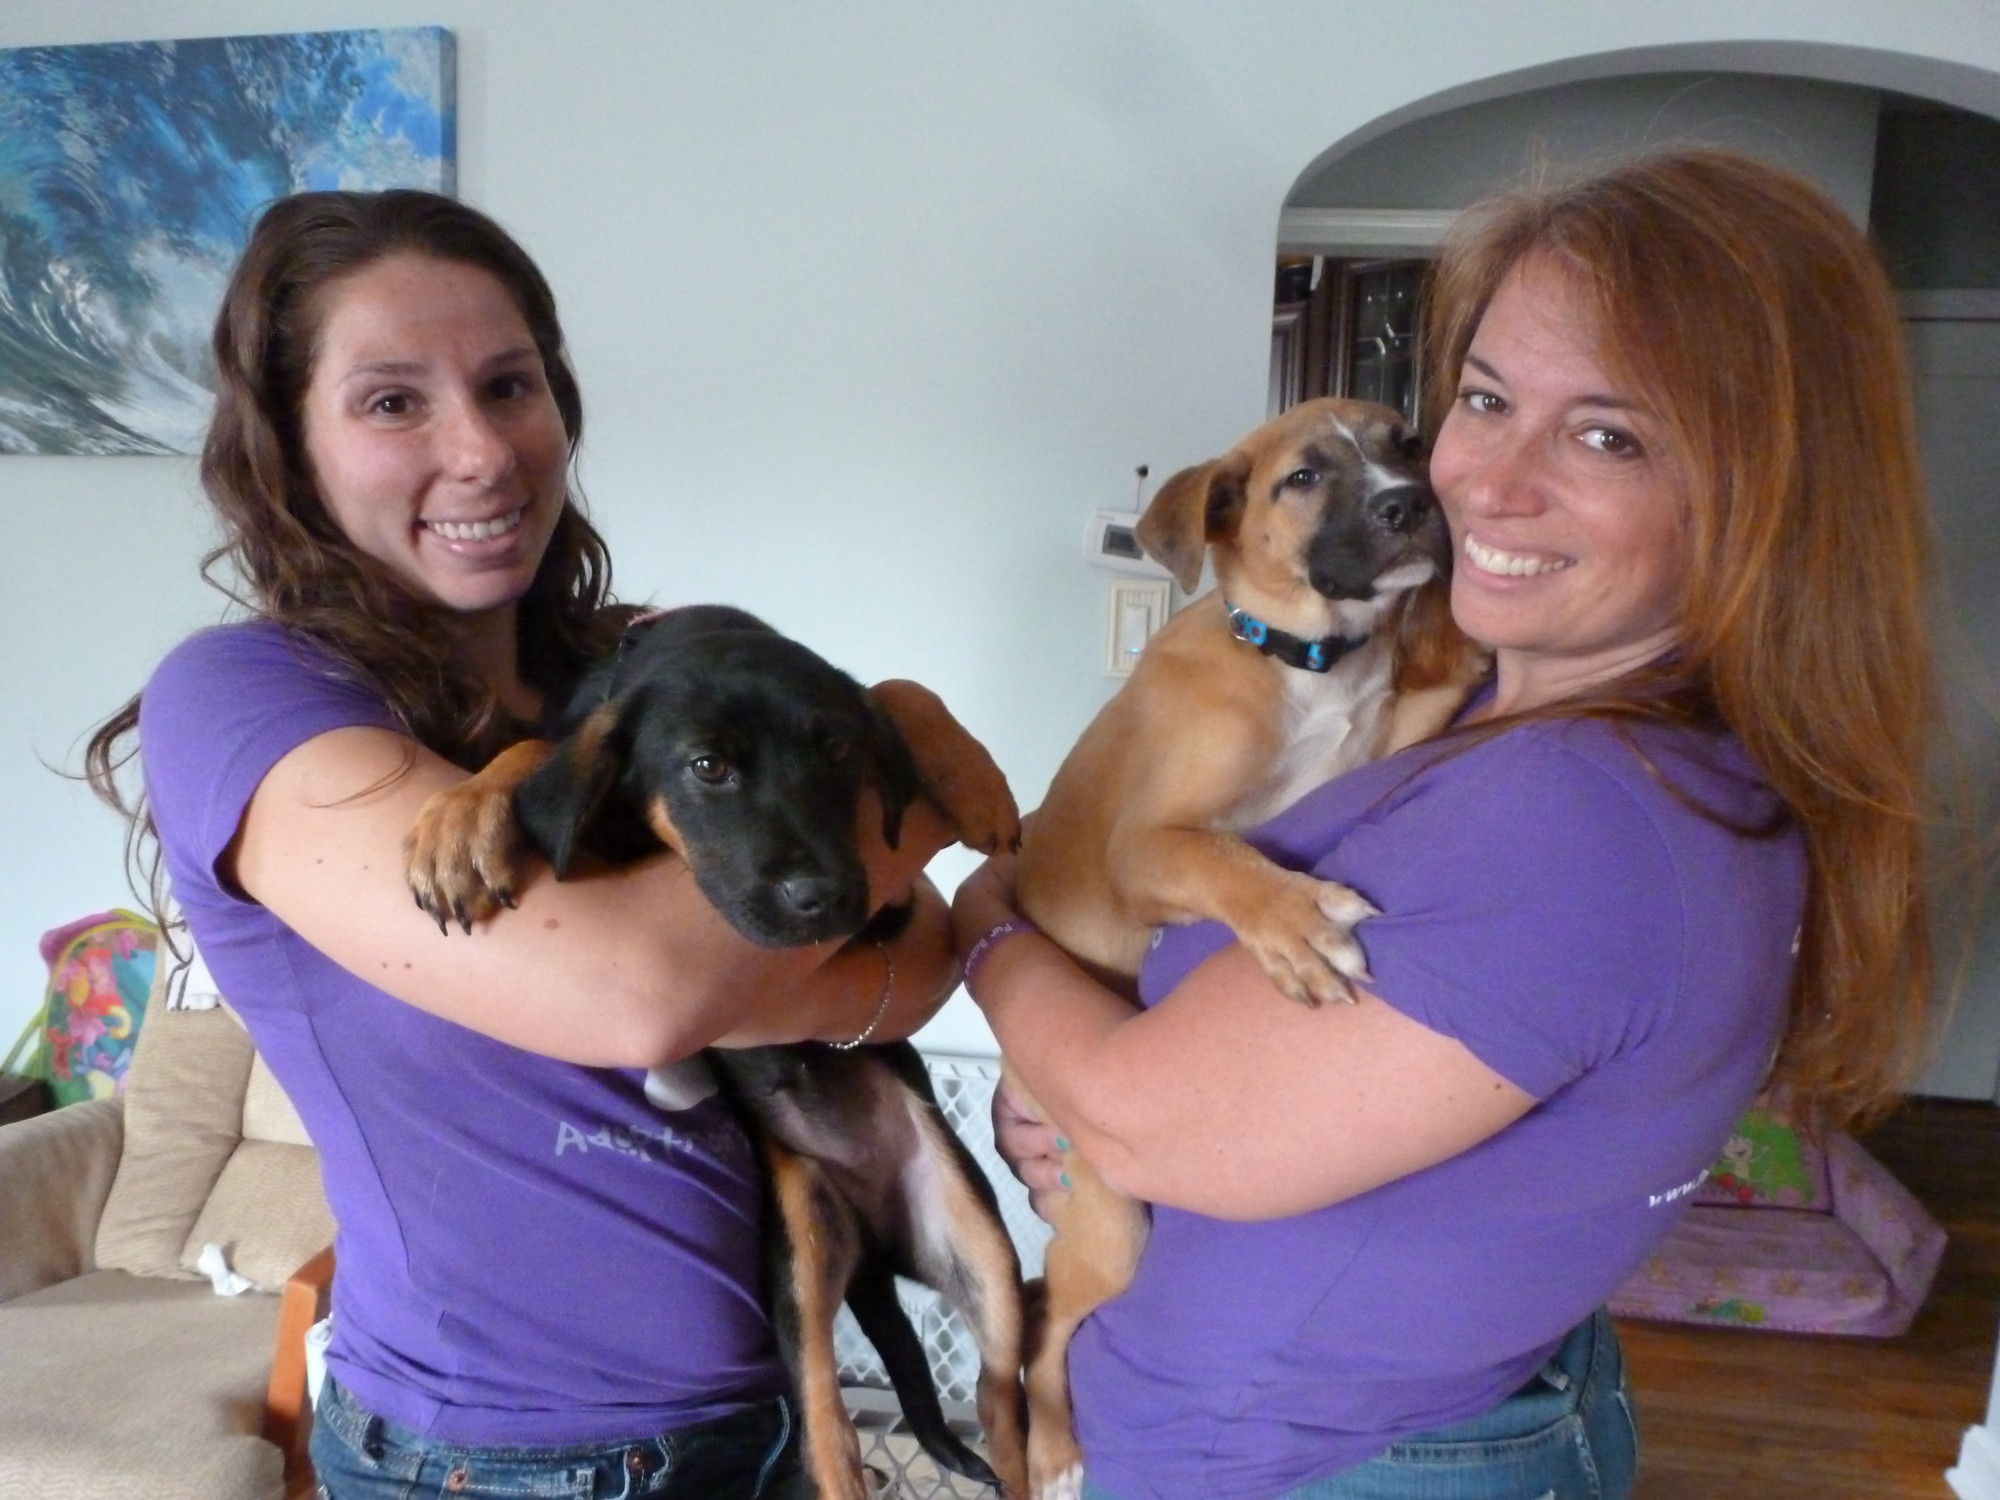 Kristen Prelesnick, left, and Kimberly Hock cradle their newest rescue dogs, Chance and Brenda, two 3-month-old pups that were rescued from two shelters in South Carolina.